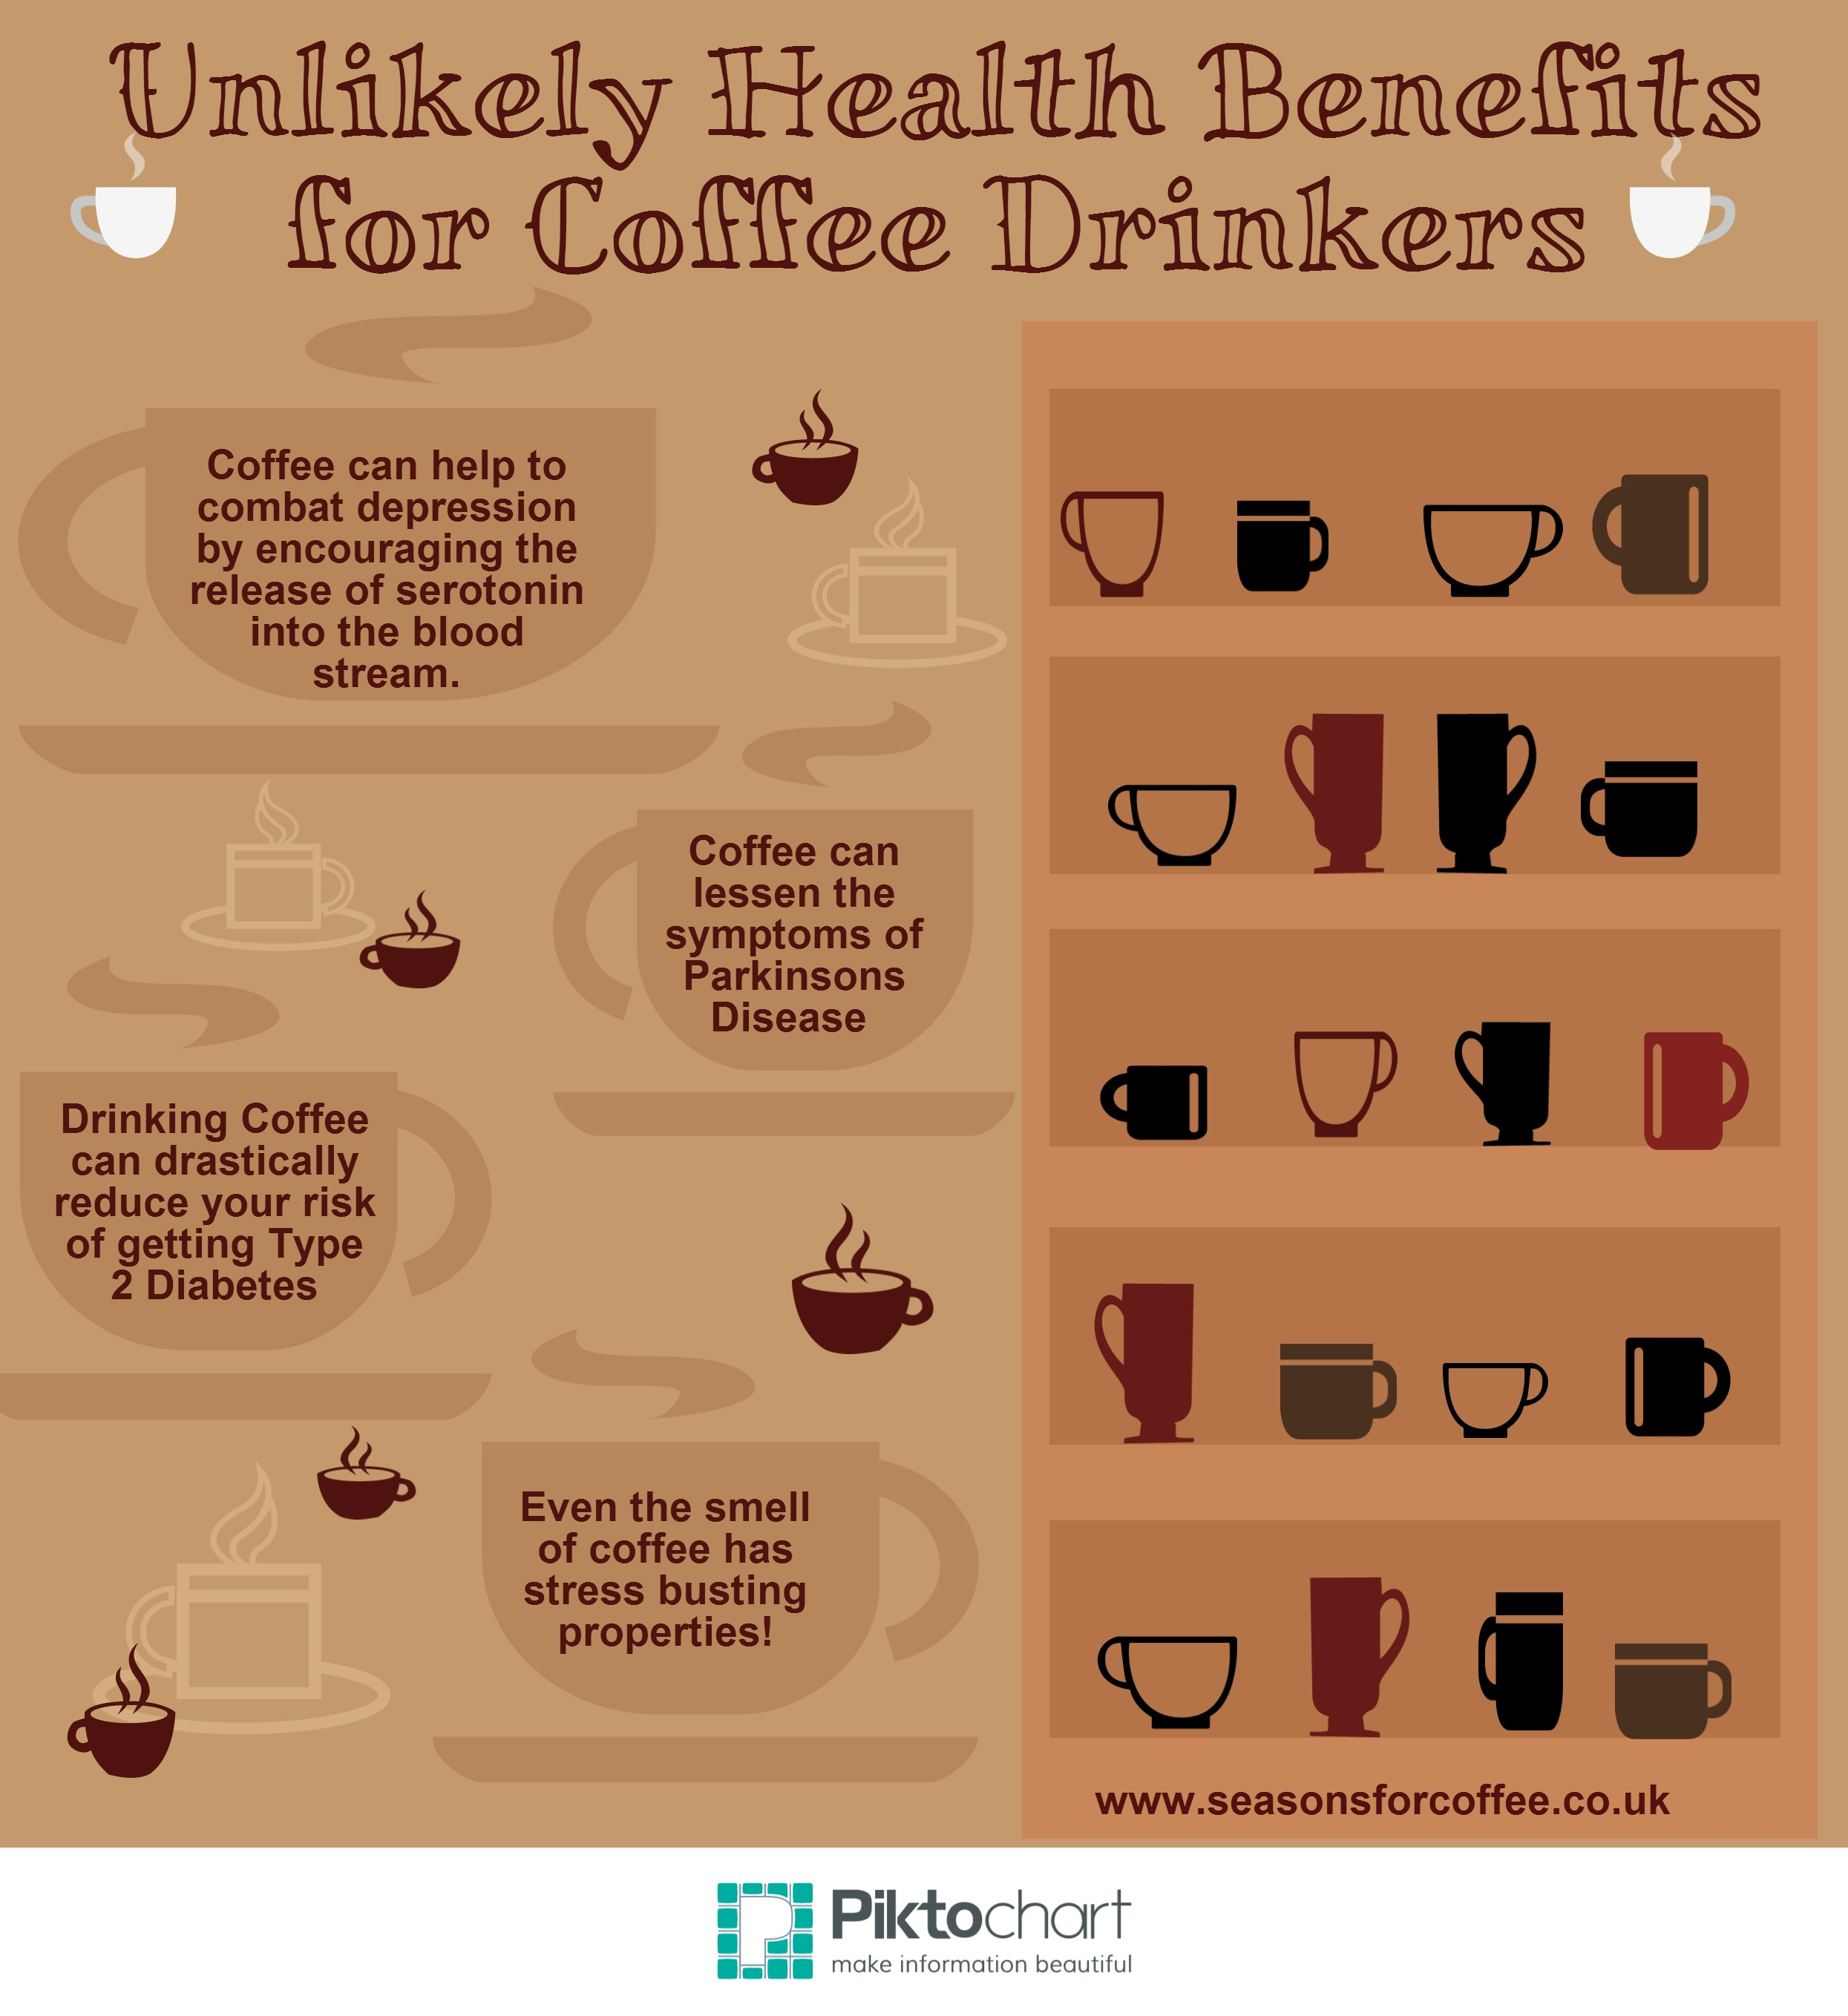 benefits coffee drinkers